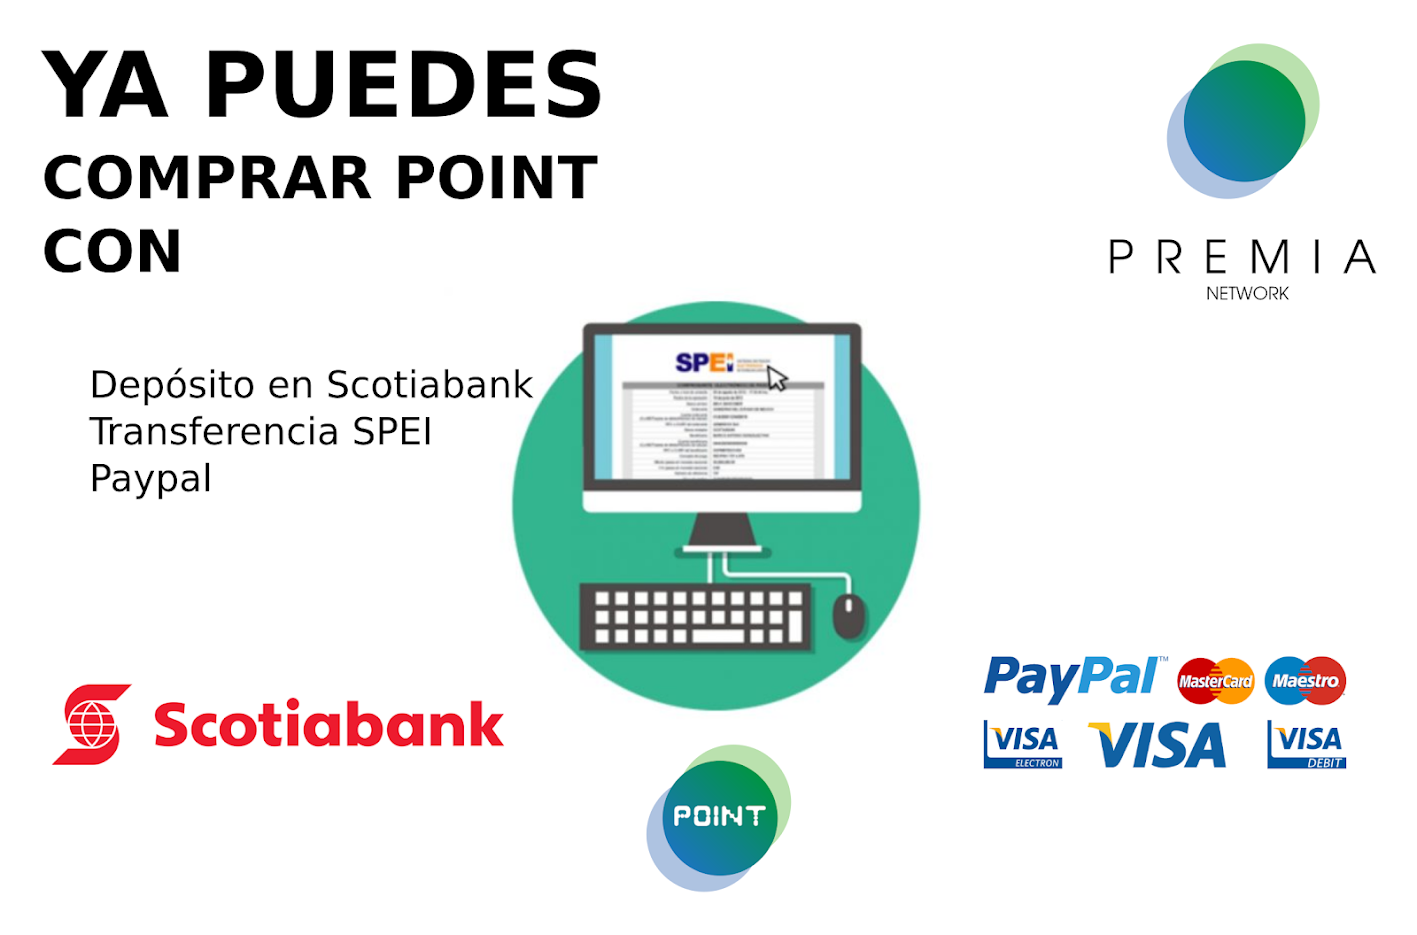 Compra POINT en Scotiabank y Paypal